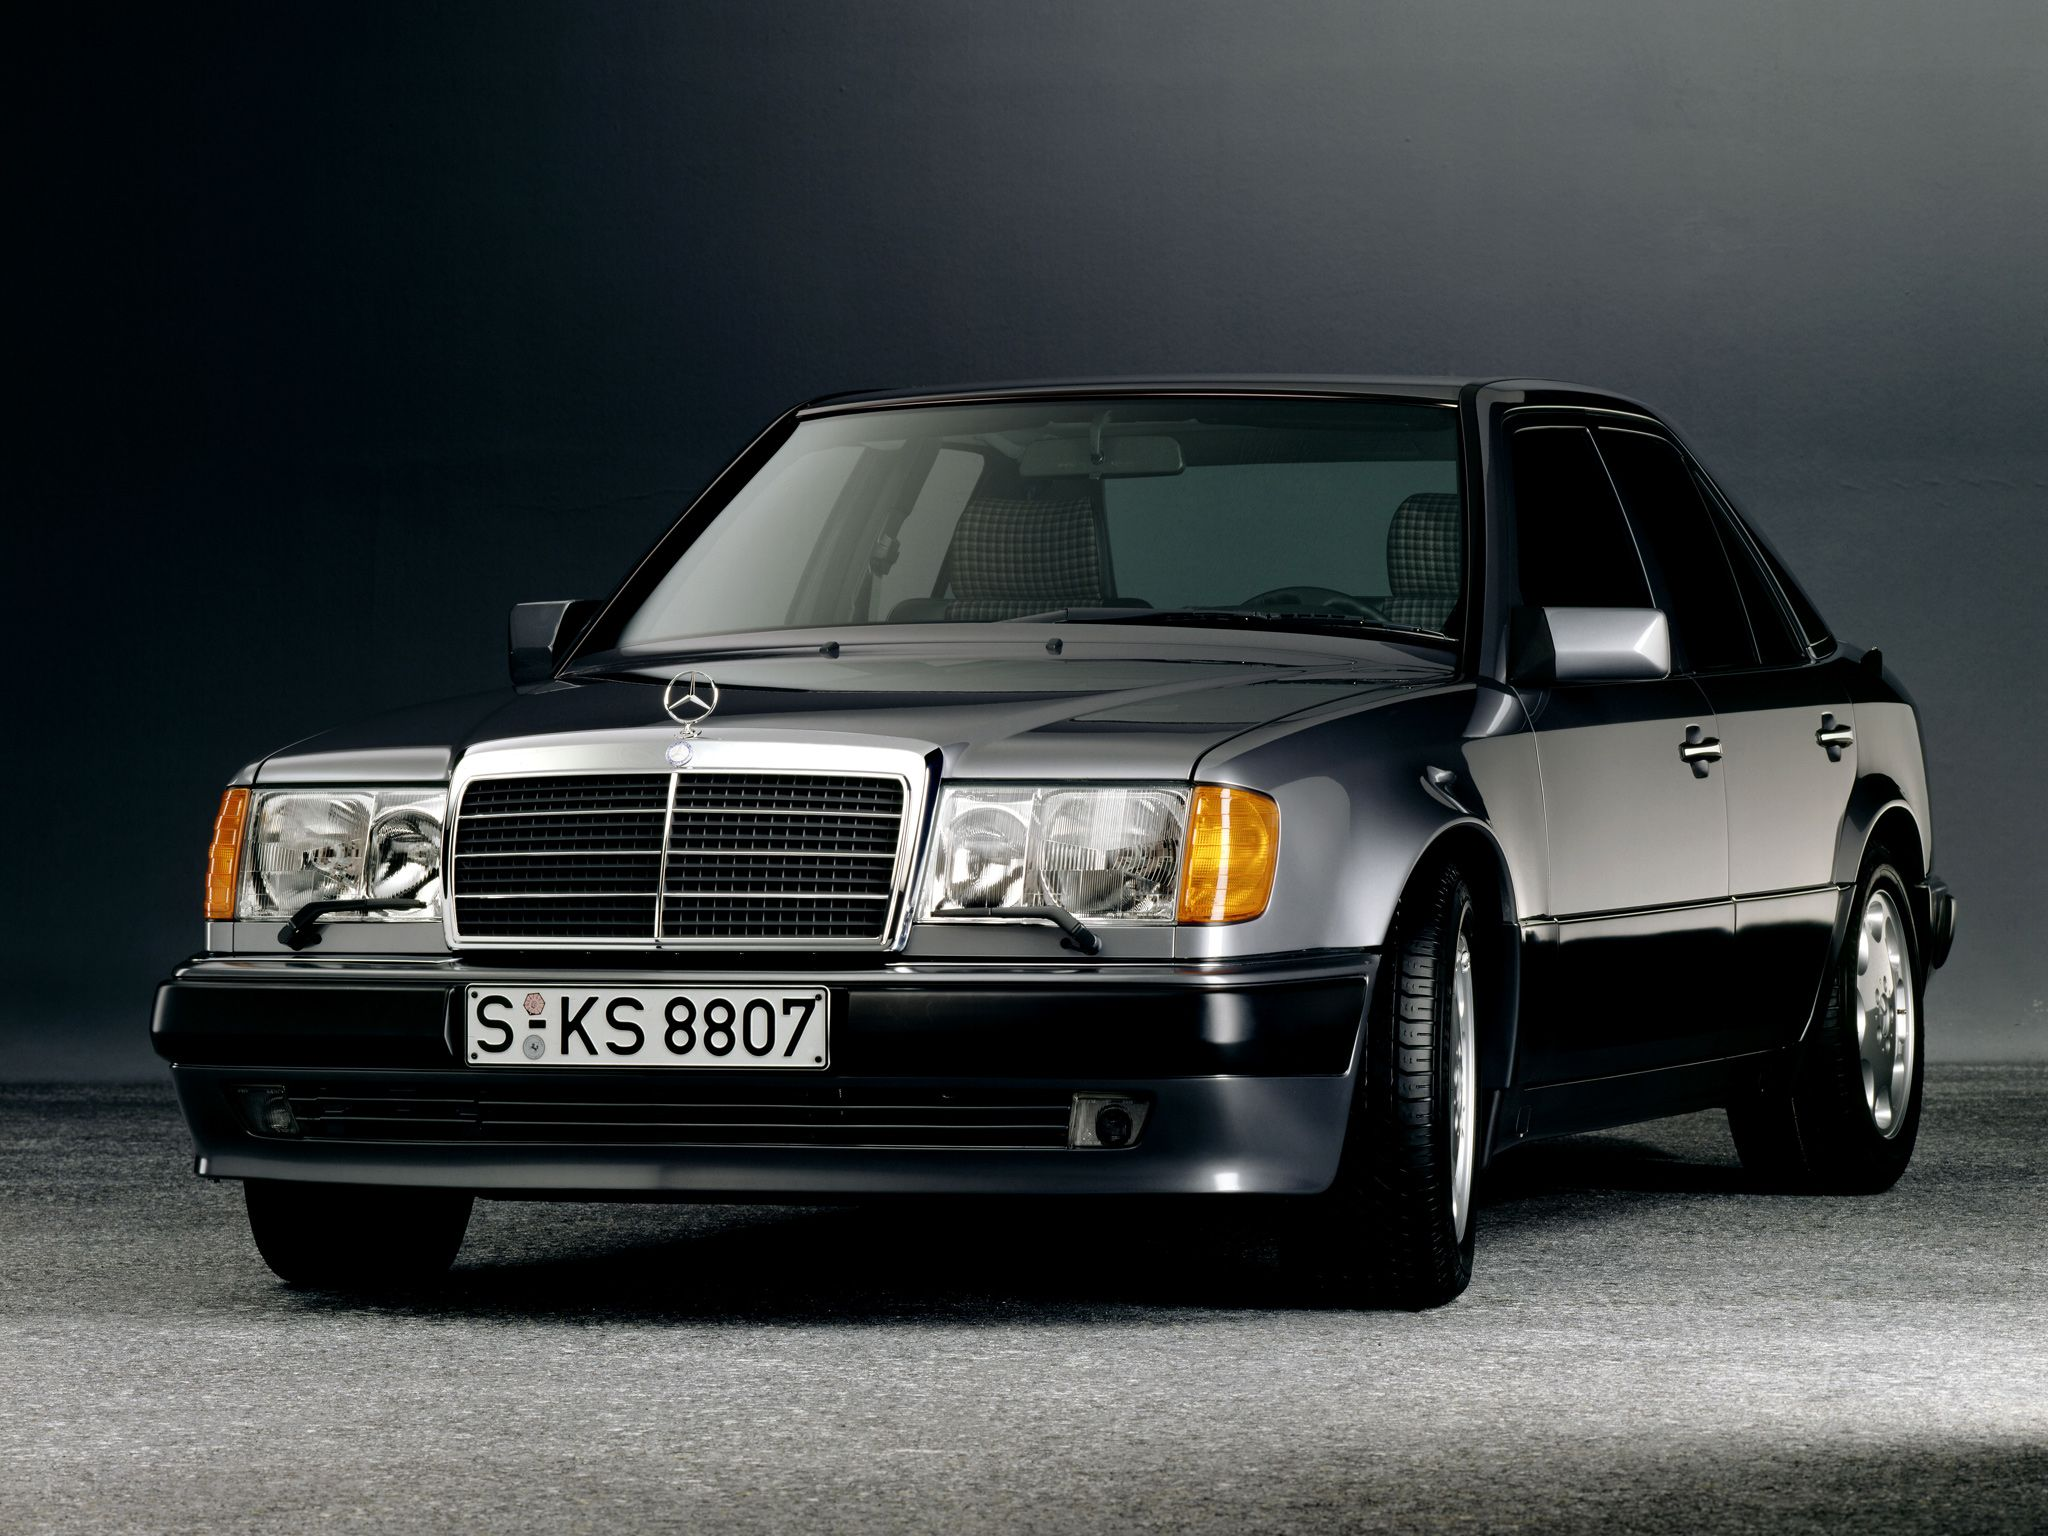 Audi RS2 and Mercedes-Benz 500E Share Porsche Heritage - Two Cars Designed  by Porsche